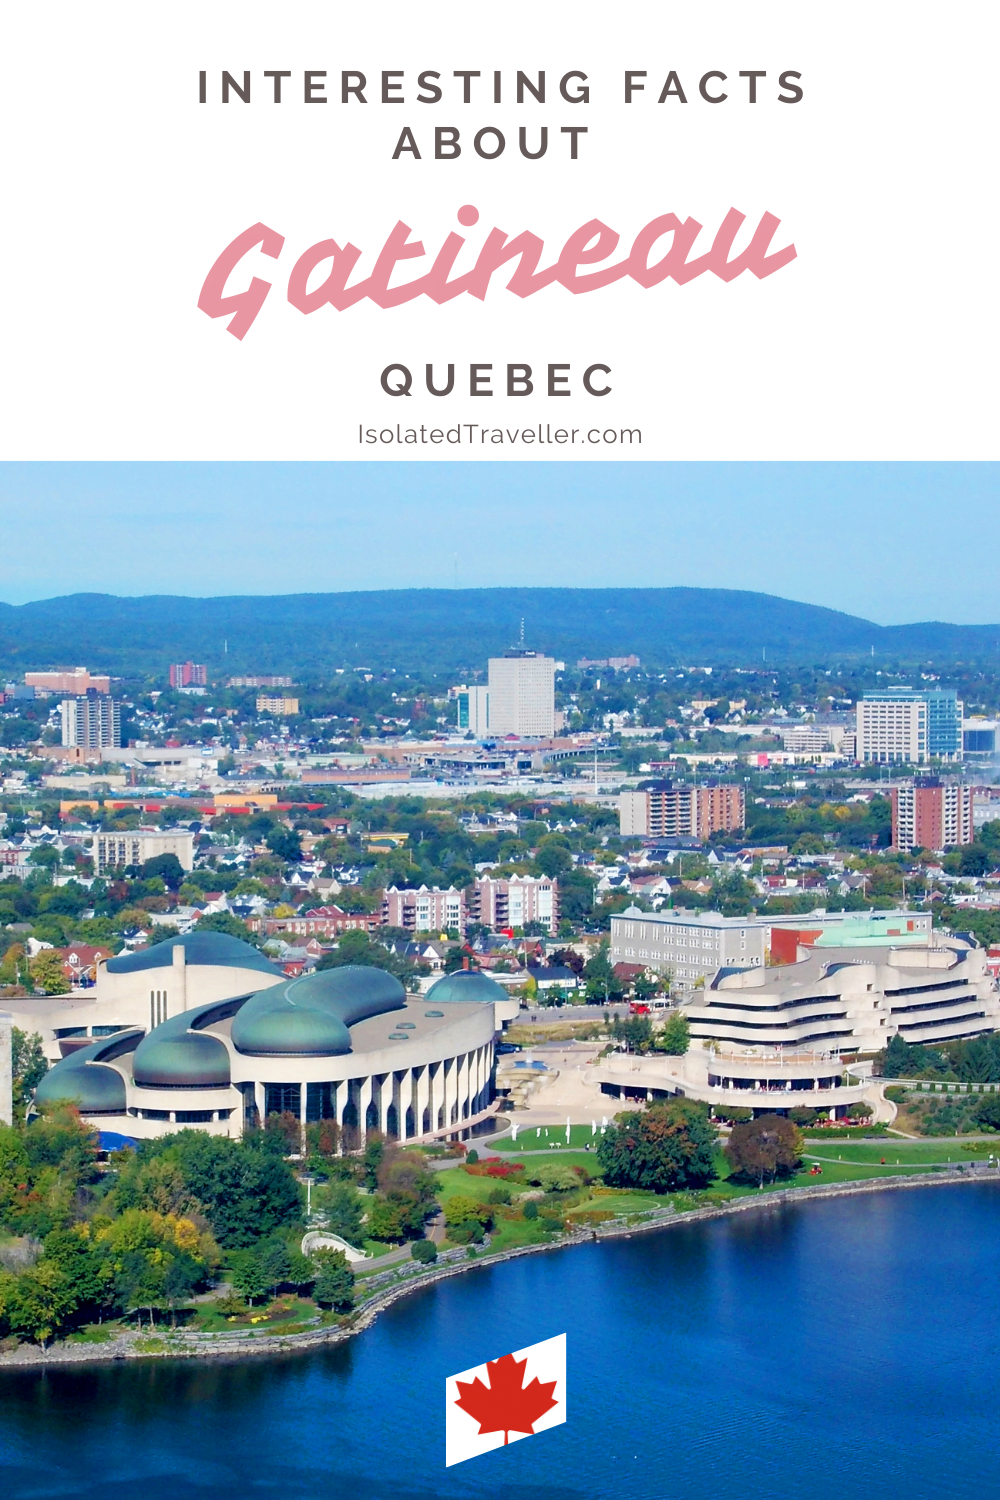 Facts About Gatineau